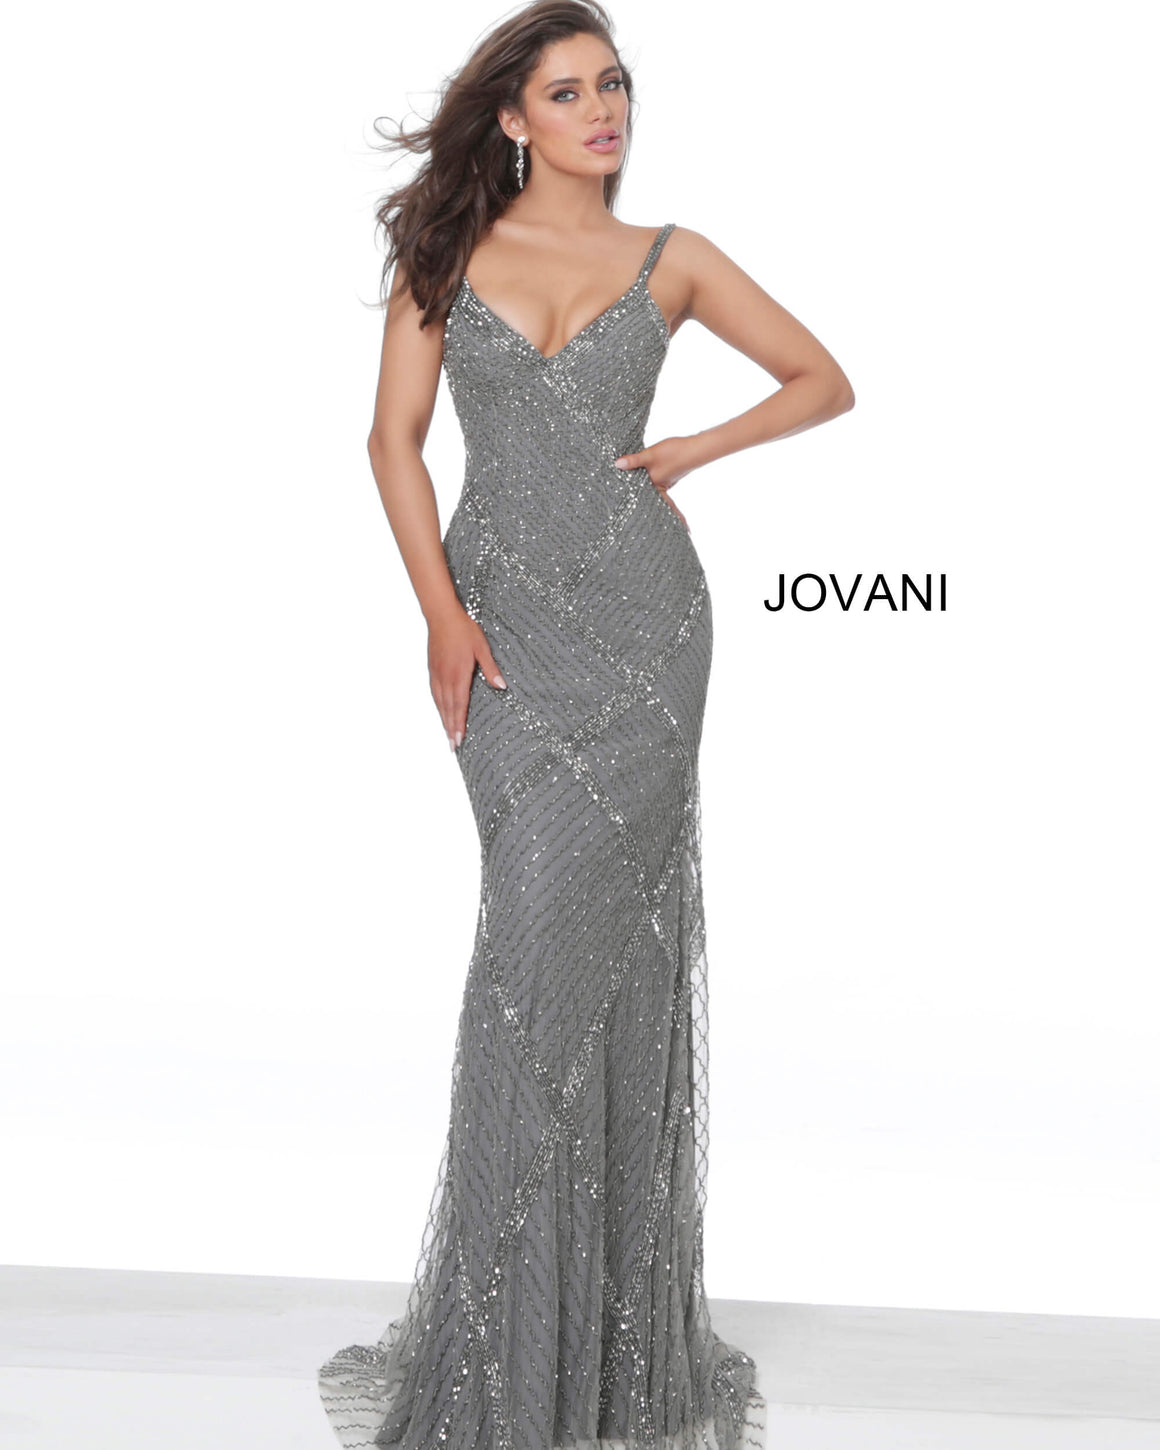 Jovani 2727 Charcoal Embellished V Neck Evening Dress